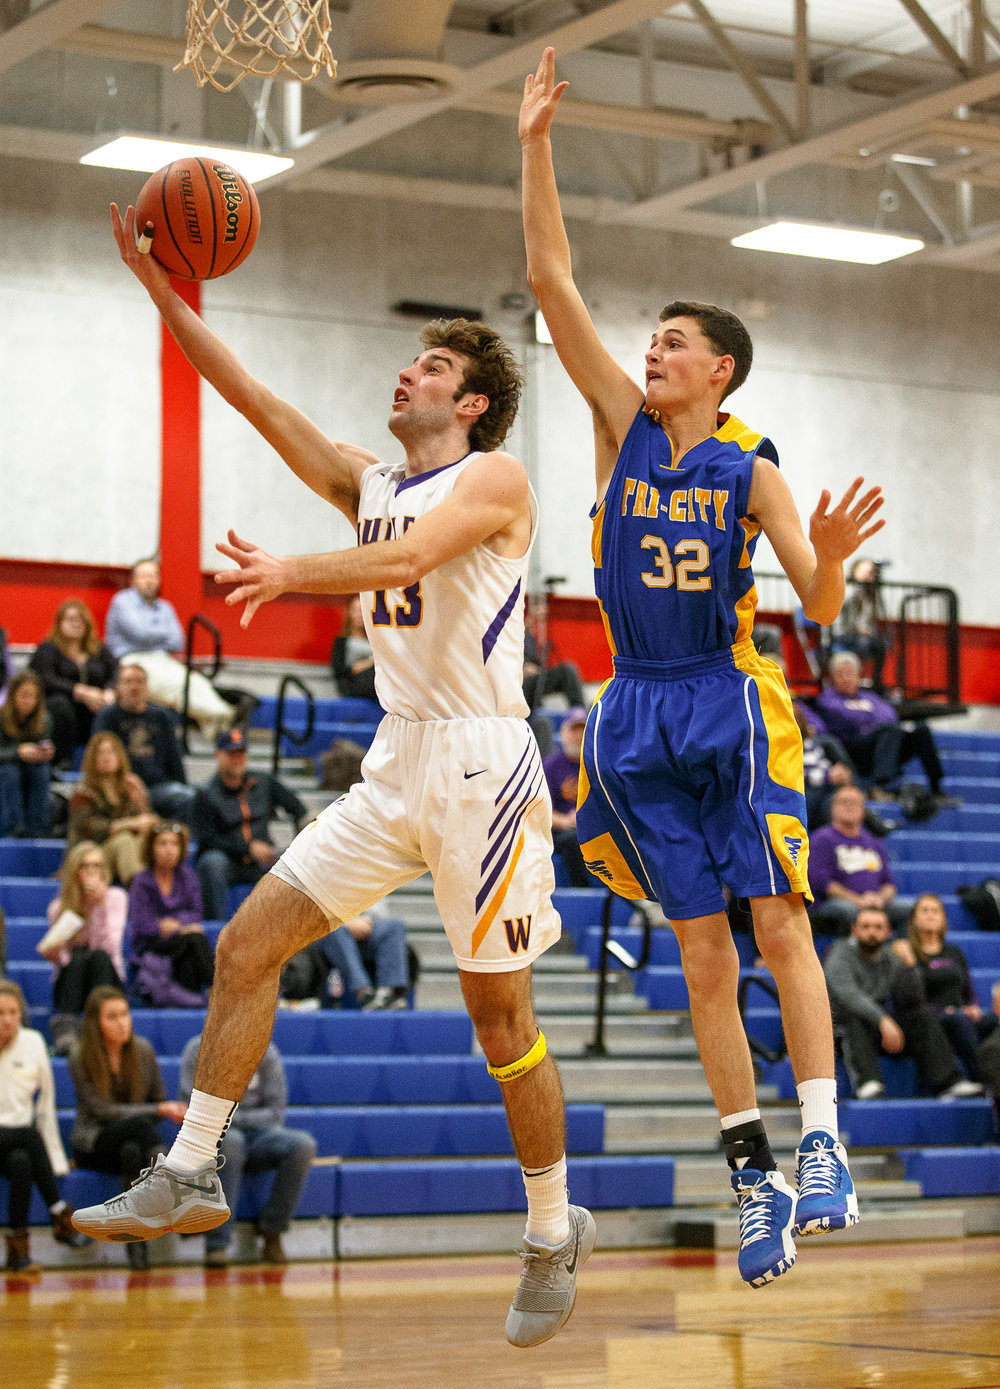 Williamsville's Joseph Mitchell (13) goes up for a shot against Buffalo Tri-City's Jace Tarr (32) in the second half during opening night of the Boys Sangamon County Tournament at Lincoln Land Community College's Cass Gymnasium, Monday, Jan. 8, 2018, in Springfield, Ill. [Justin L. Fowler/The State Journal-Register]